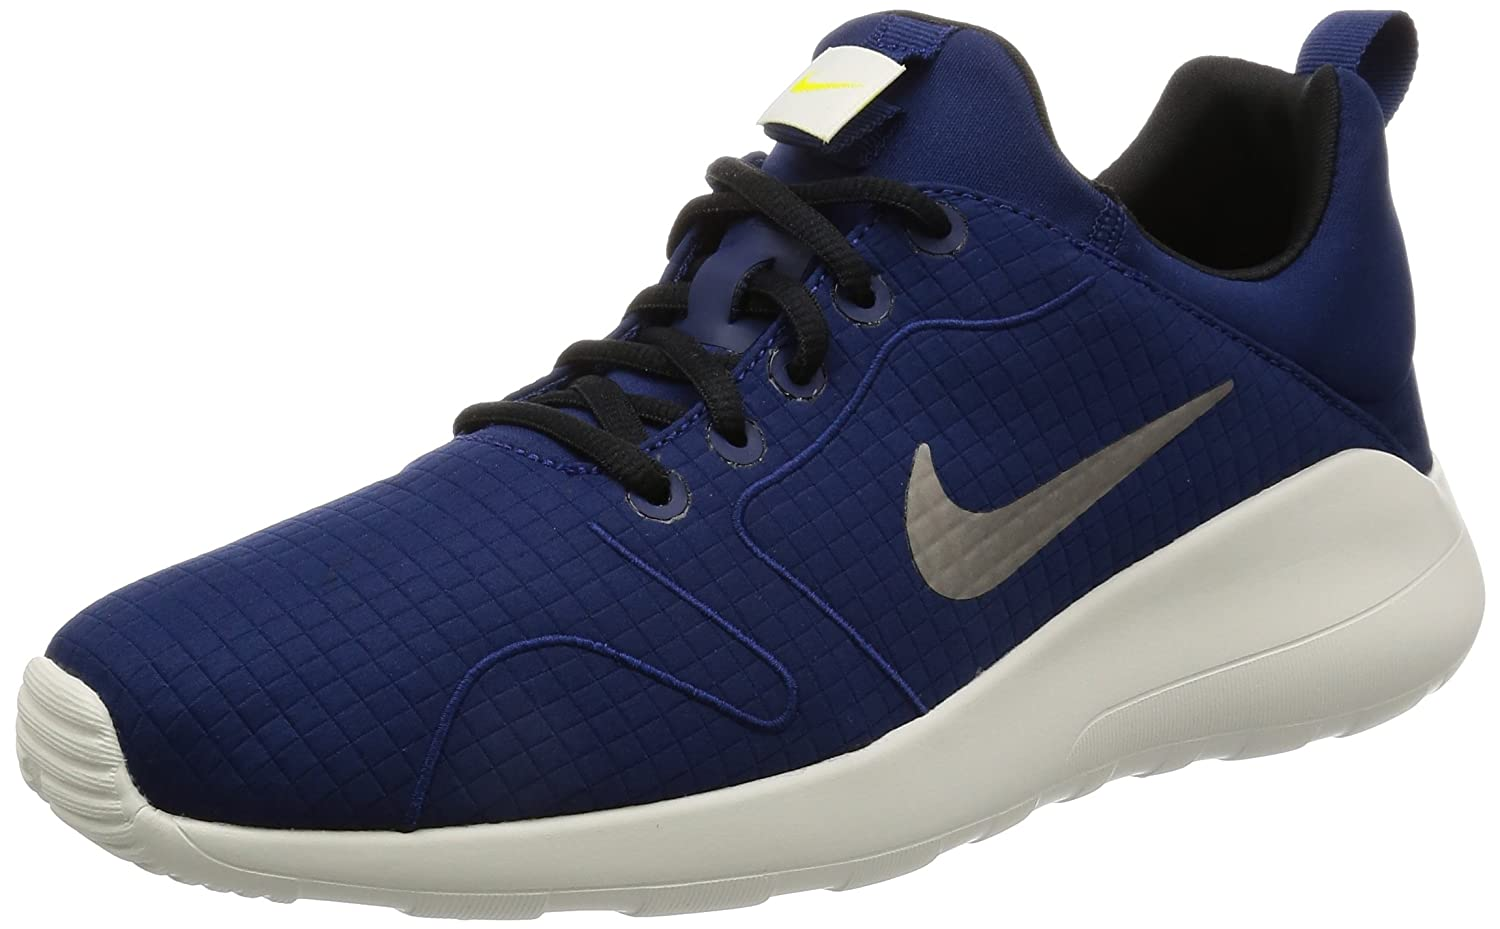 Nike Herren Kaishi 2.0 Prem Sneakers  43 EU|Blau (Binary Blue/Black/Light Bone/Electro Lime)